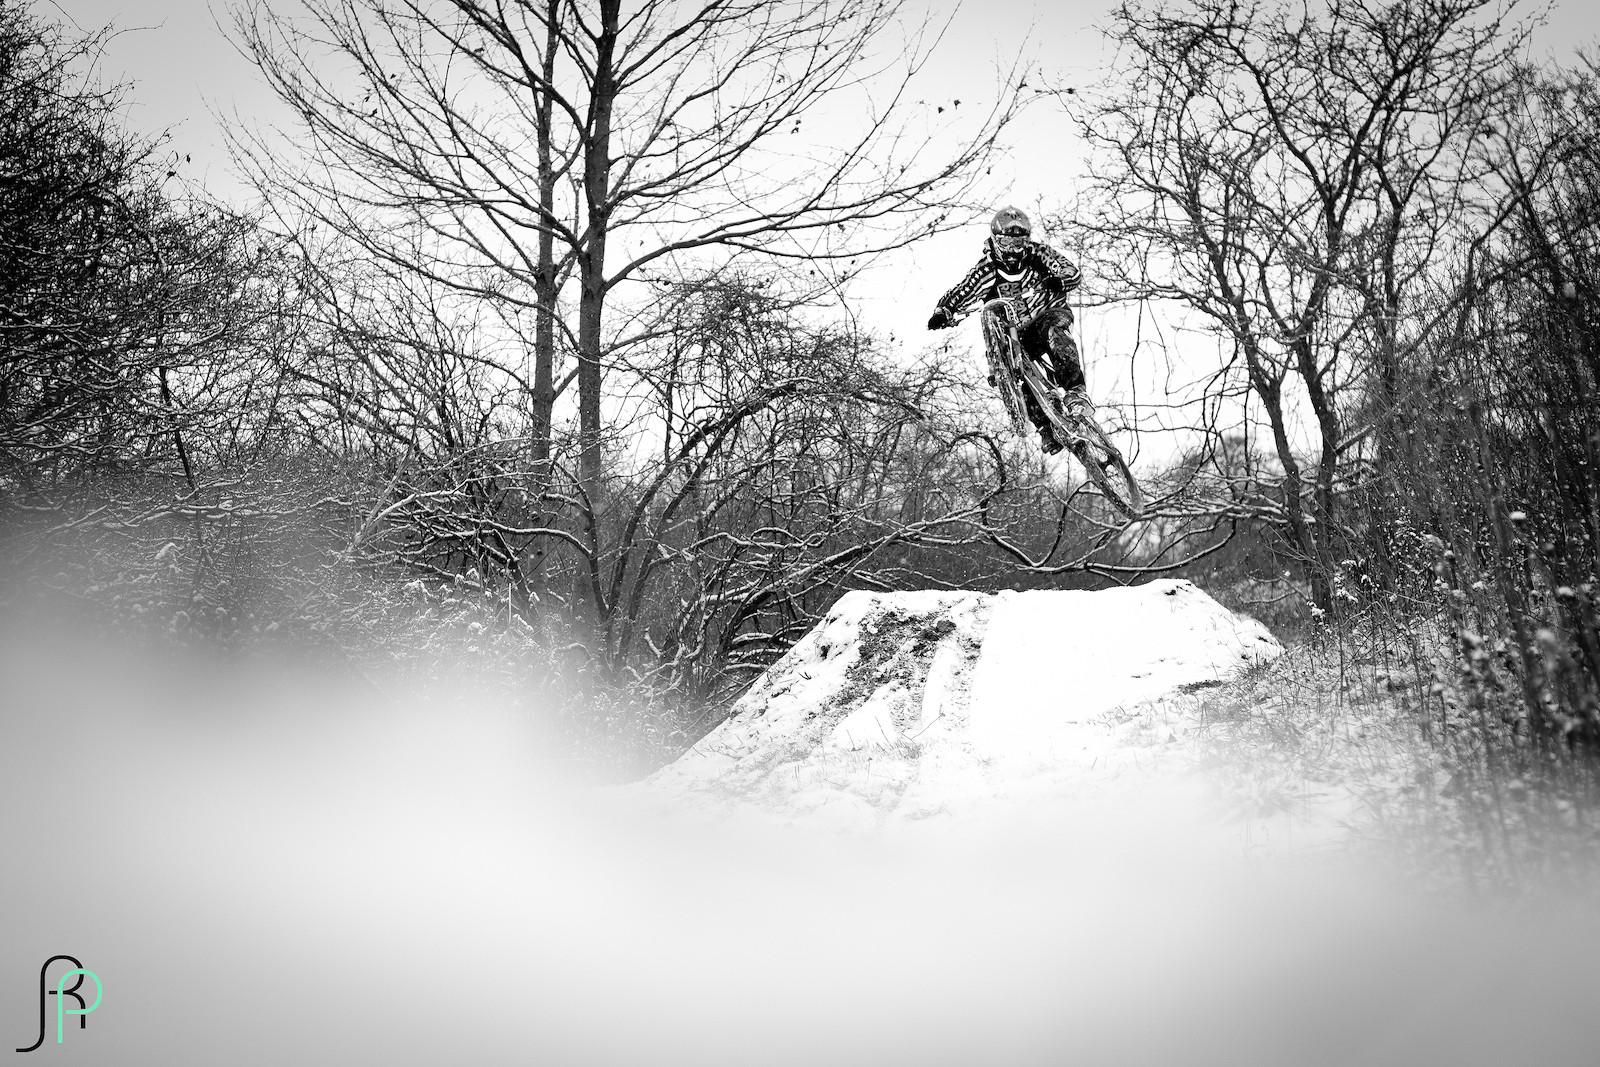 Adam Robbins - Step Up  - JackPadega - Mountain Biking Pictures - Vital MTB